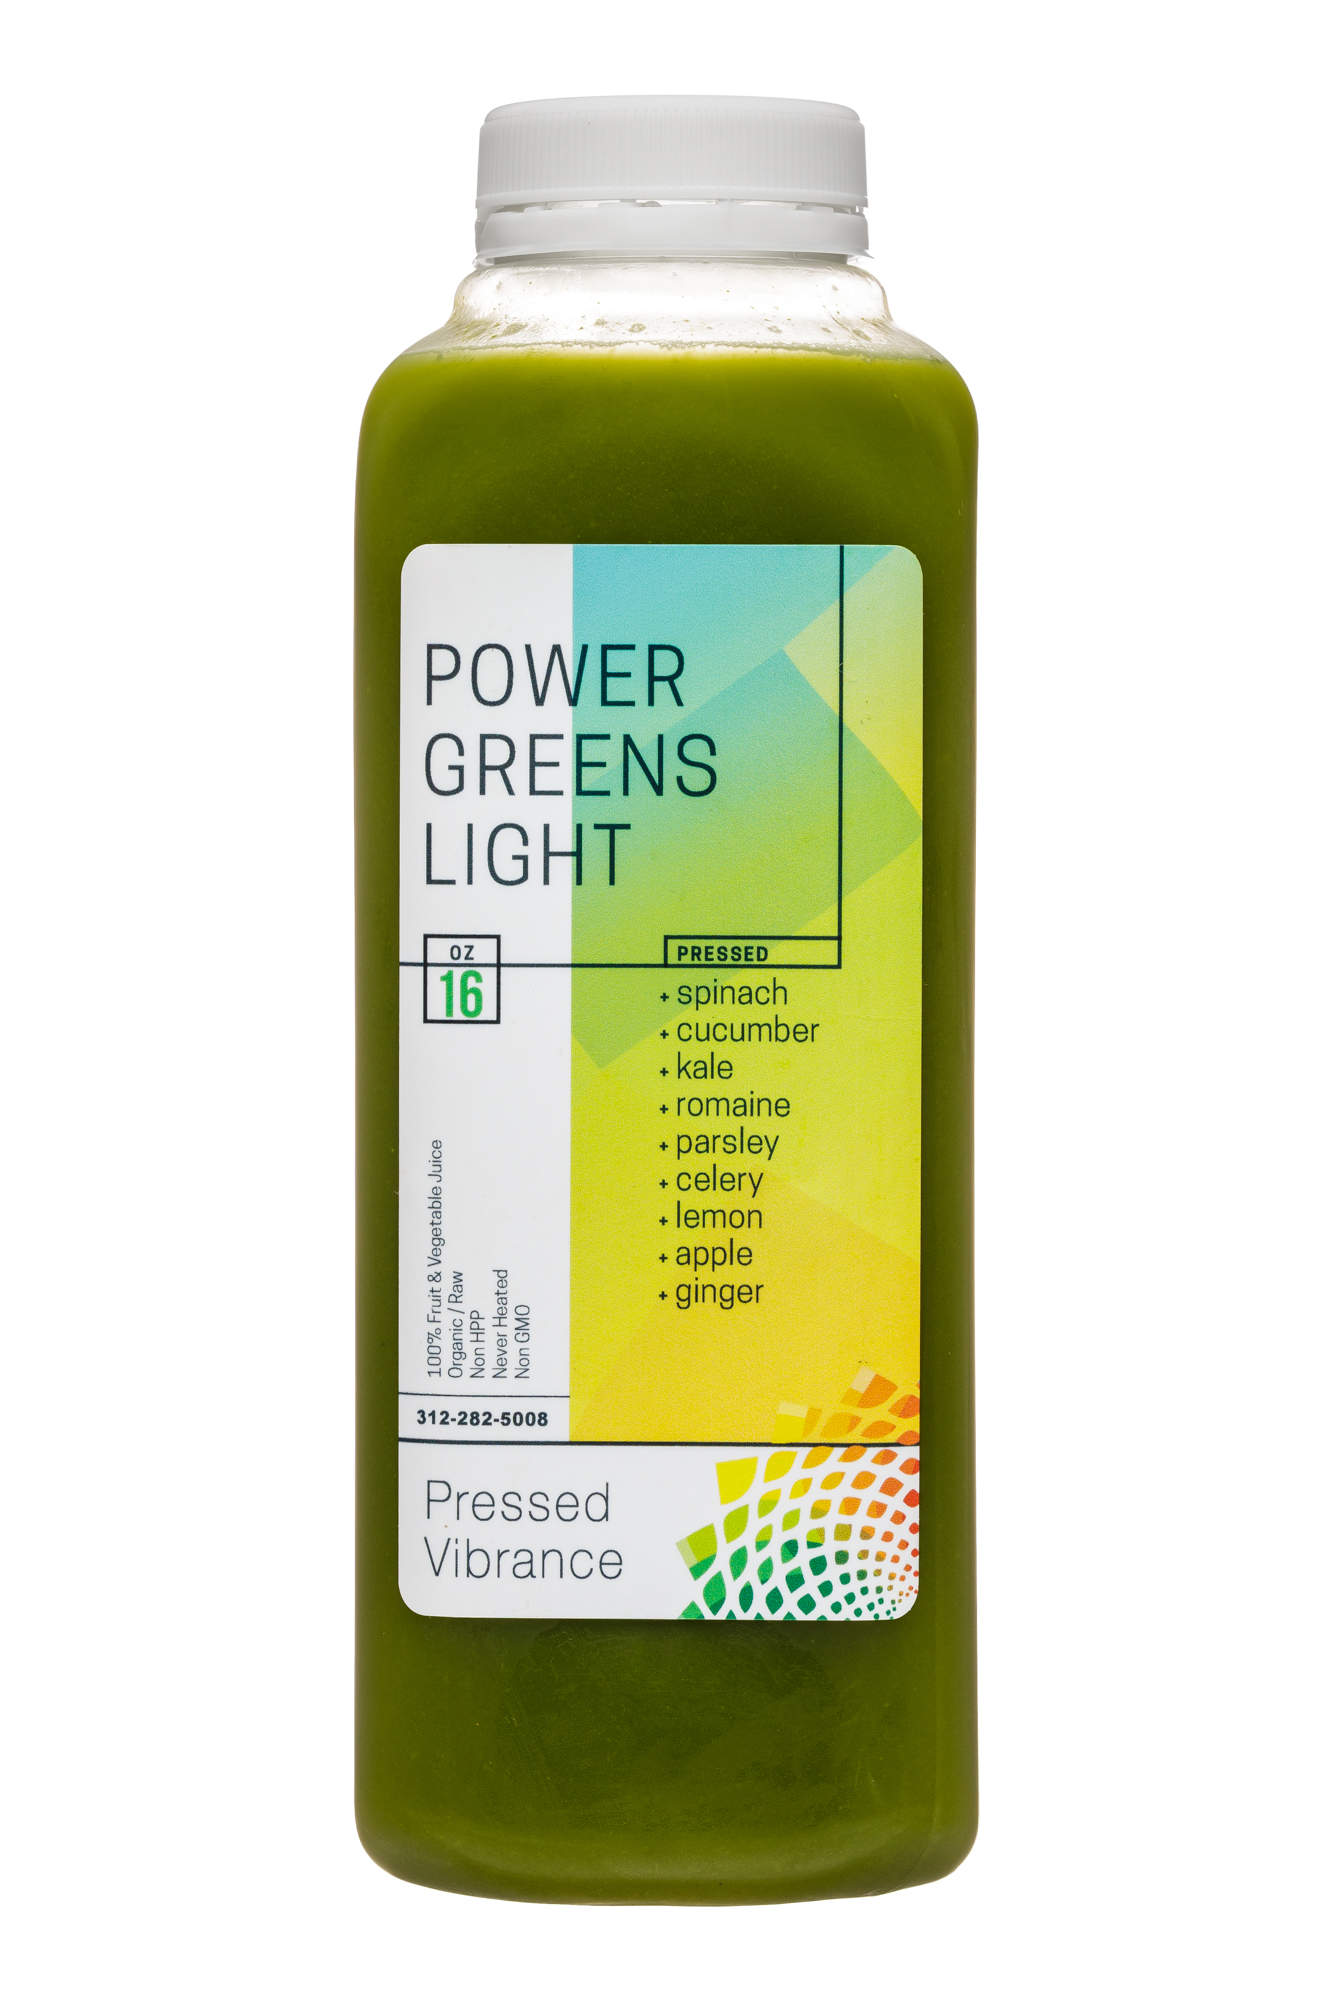 Power Greens Light